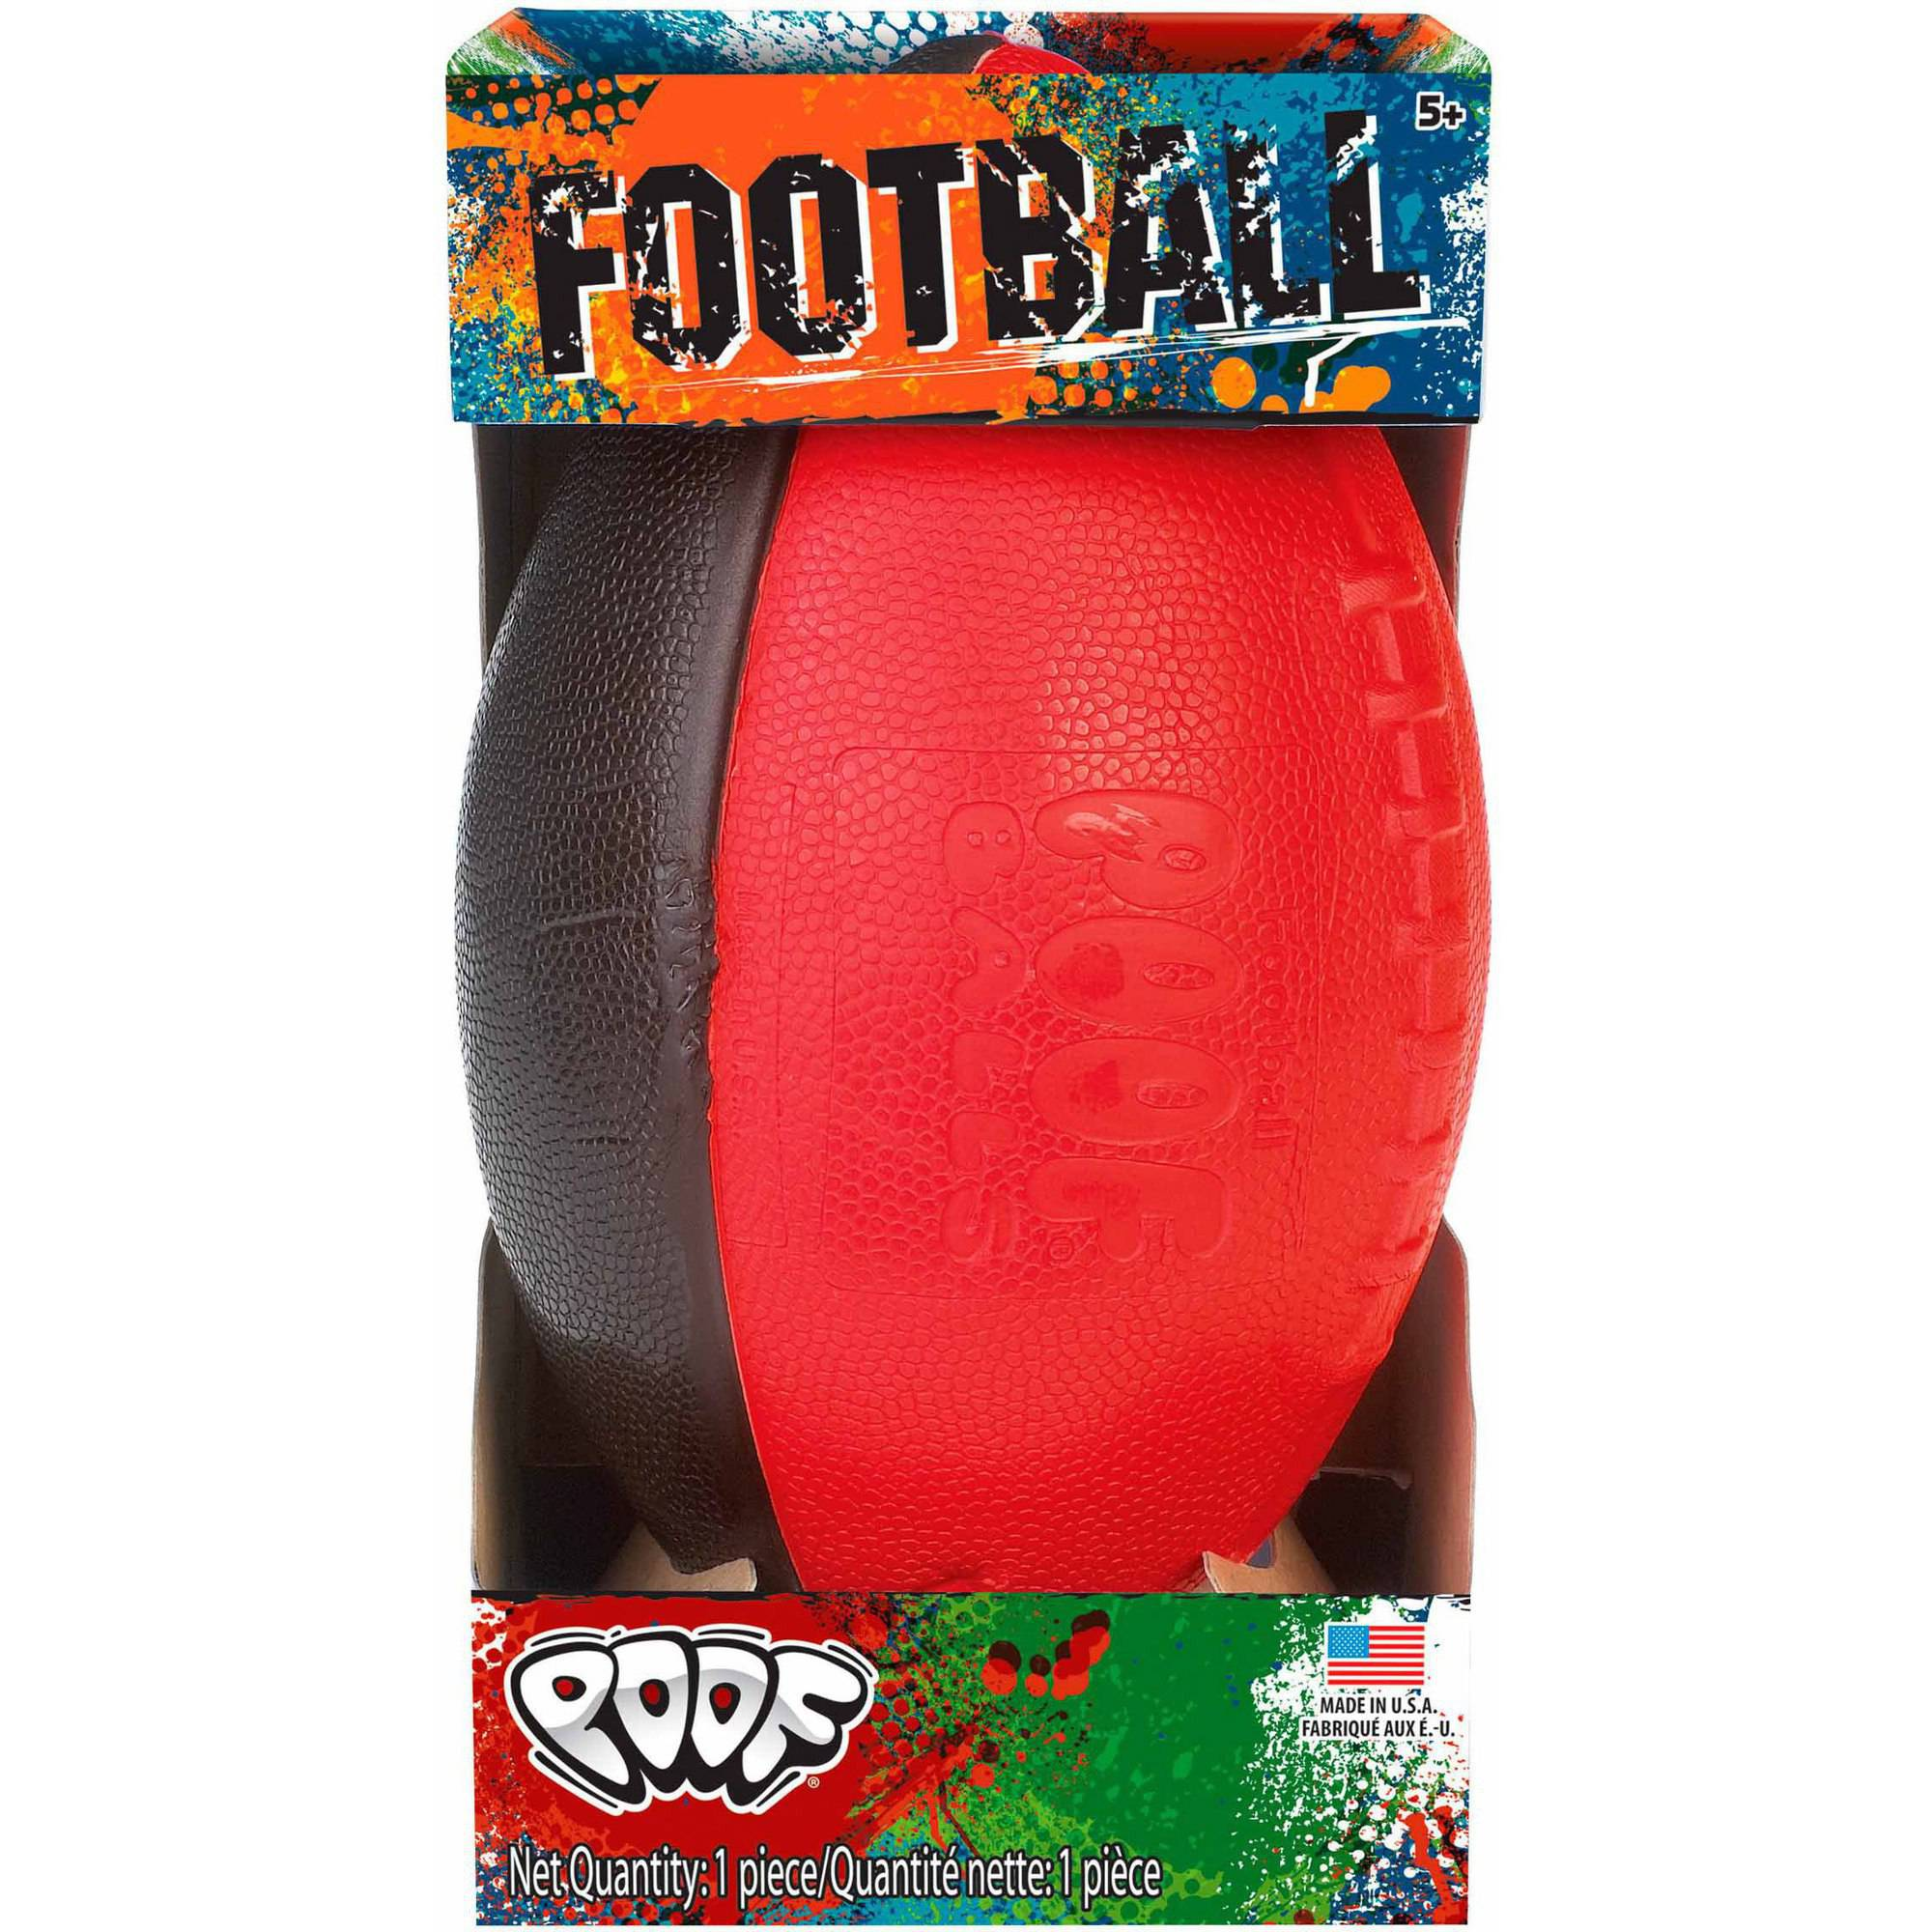 "Alex Brands POOF Standard 9-1/2"" Football in Box"